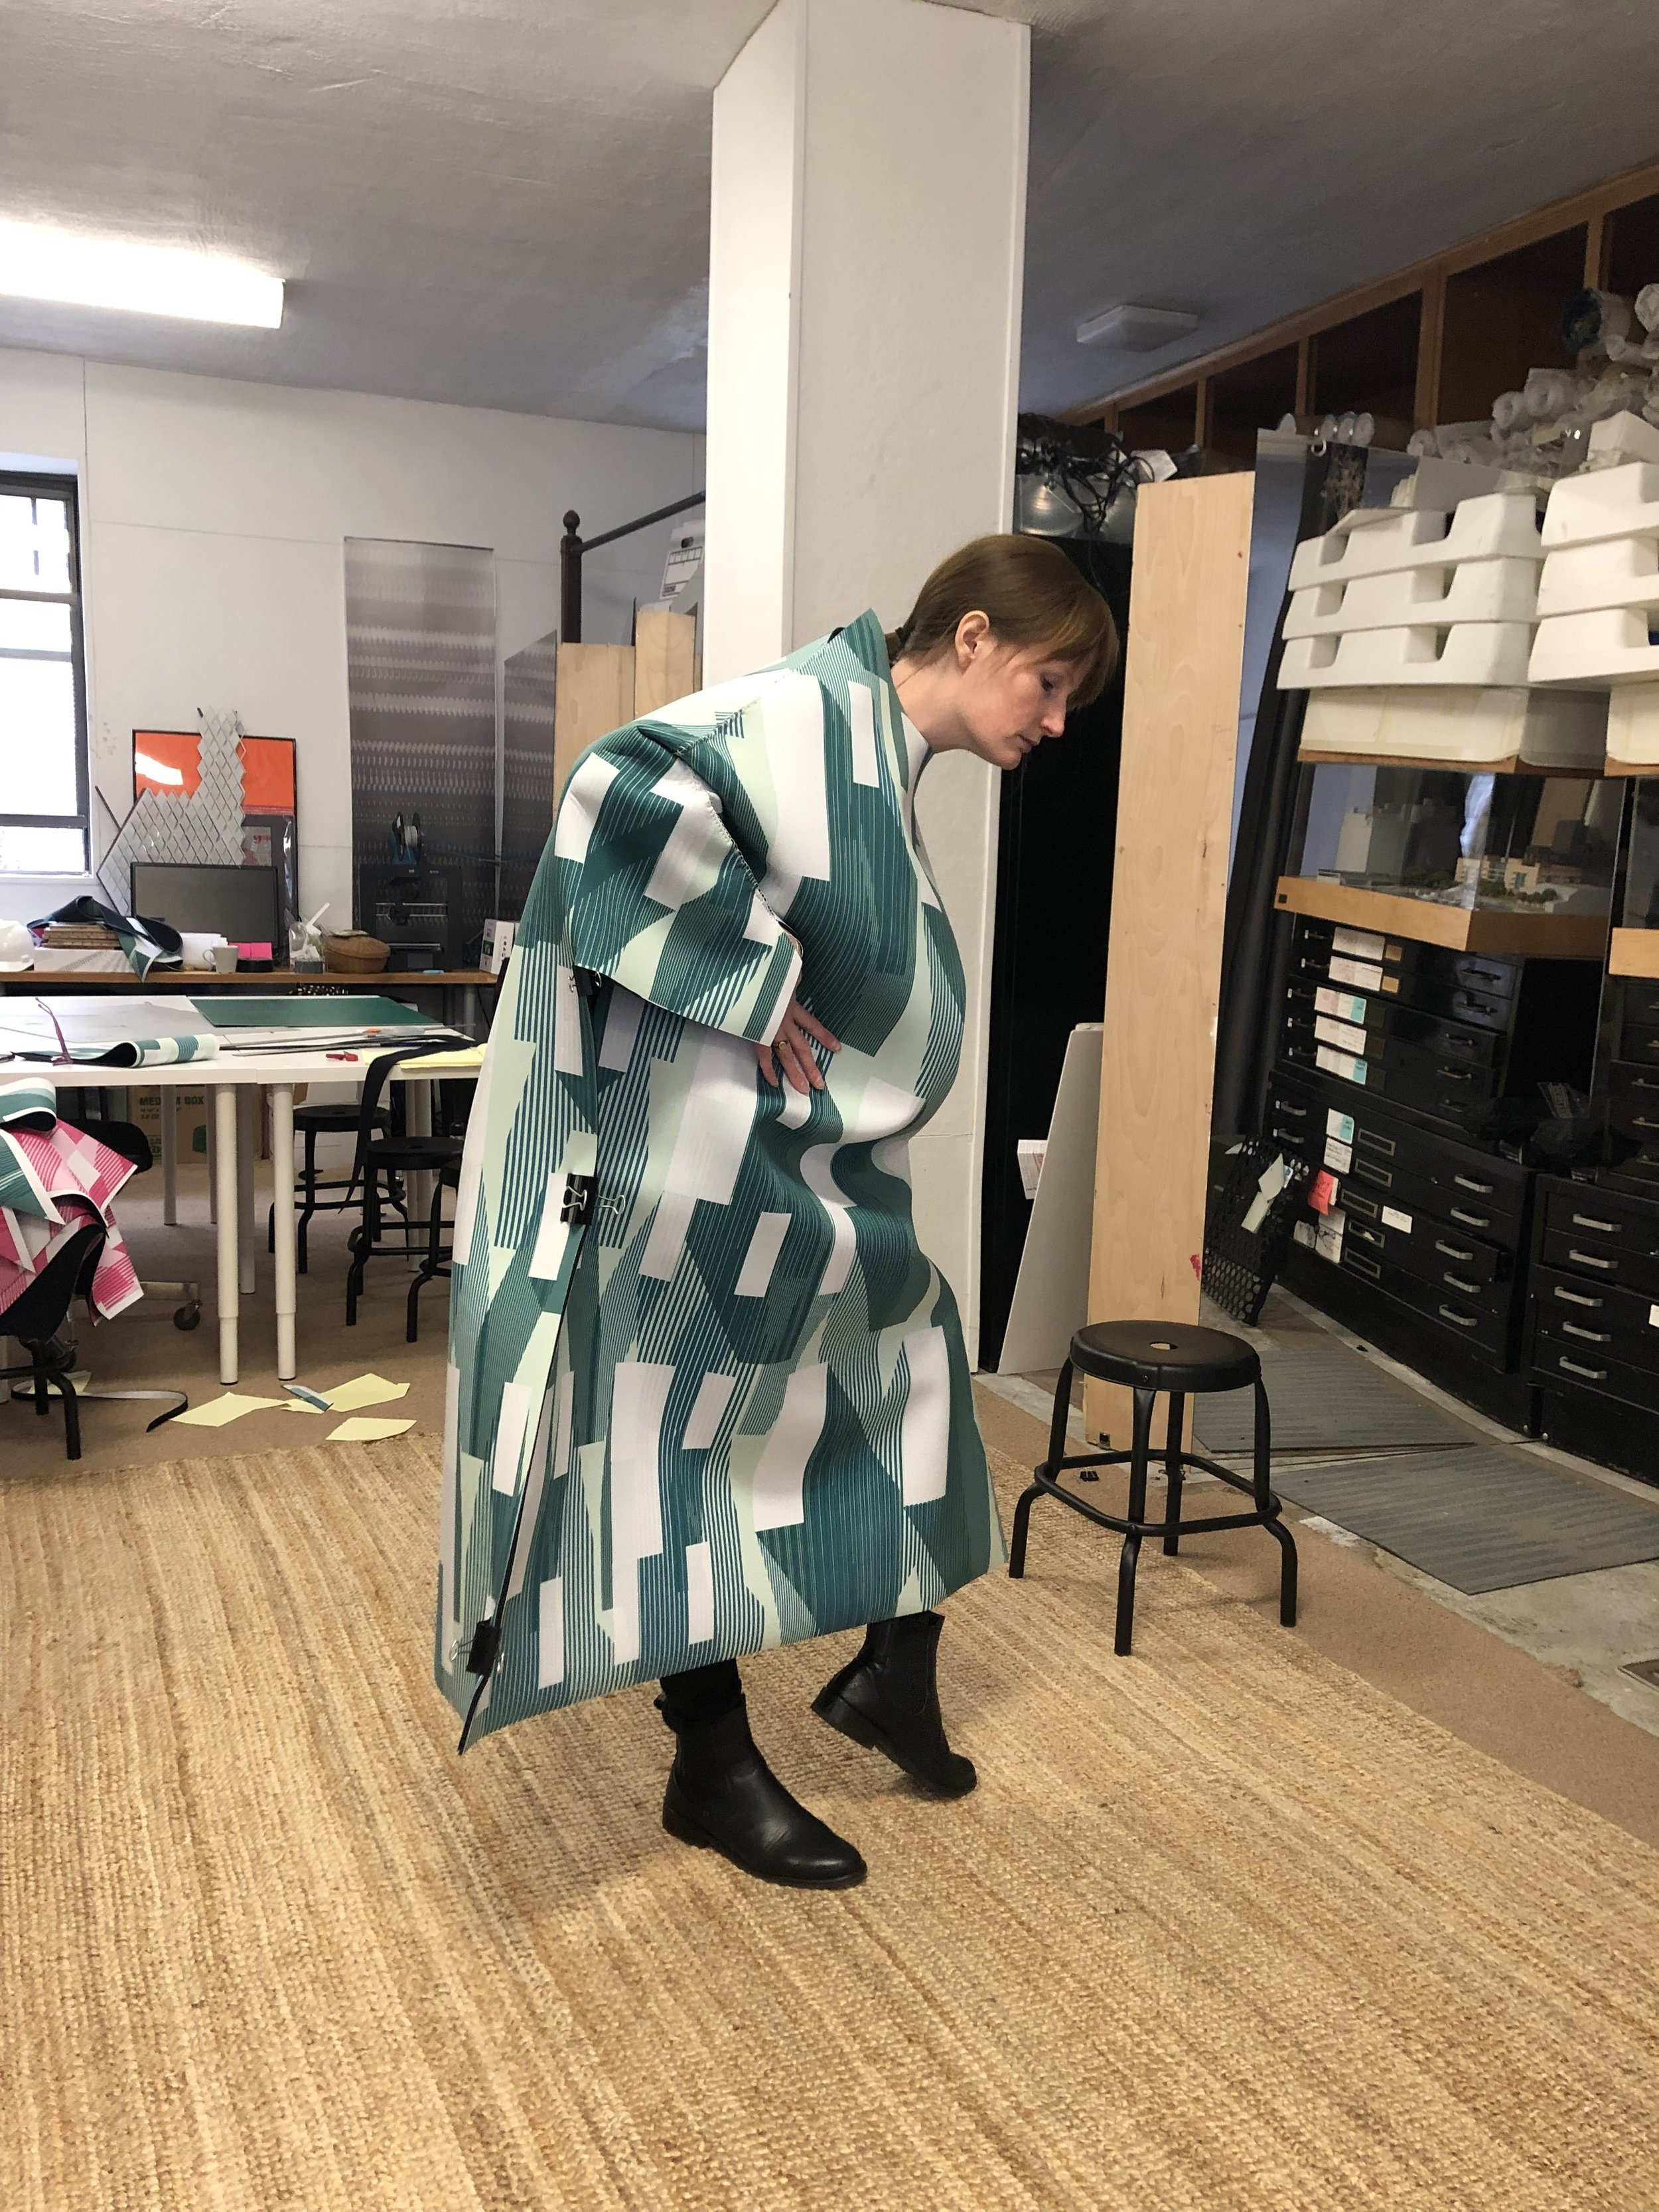 Jenny French modeling the Kendall Garage dress in mid-production at French 2D's studio